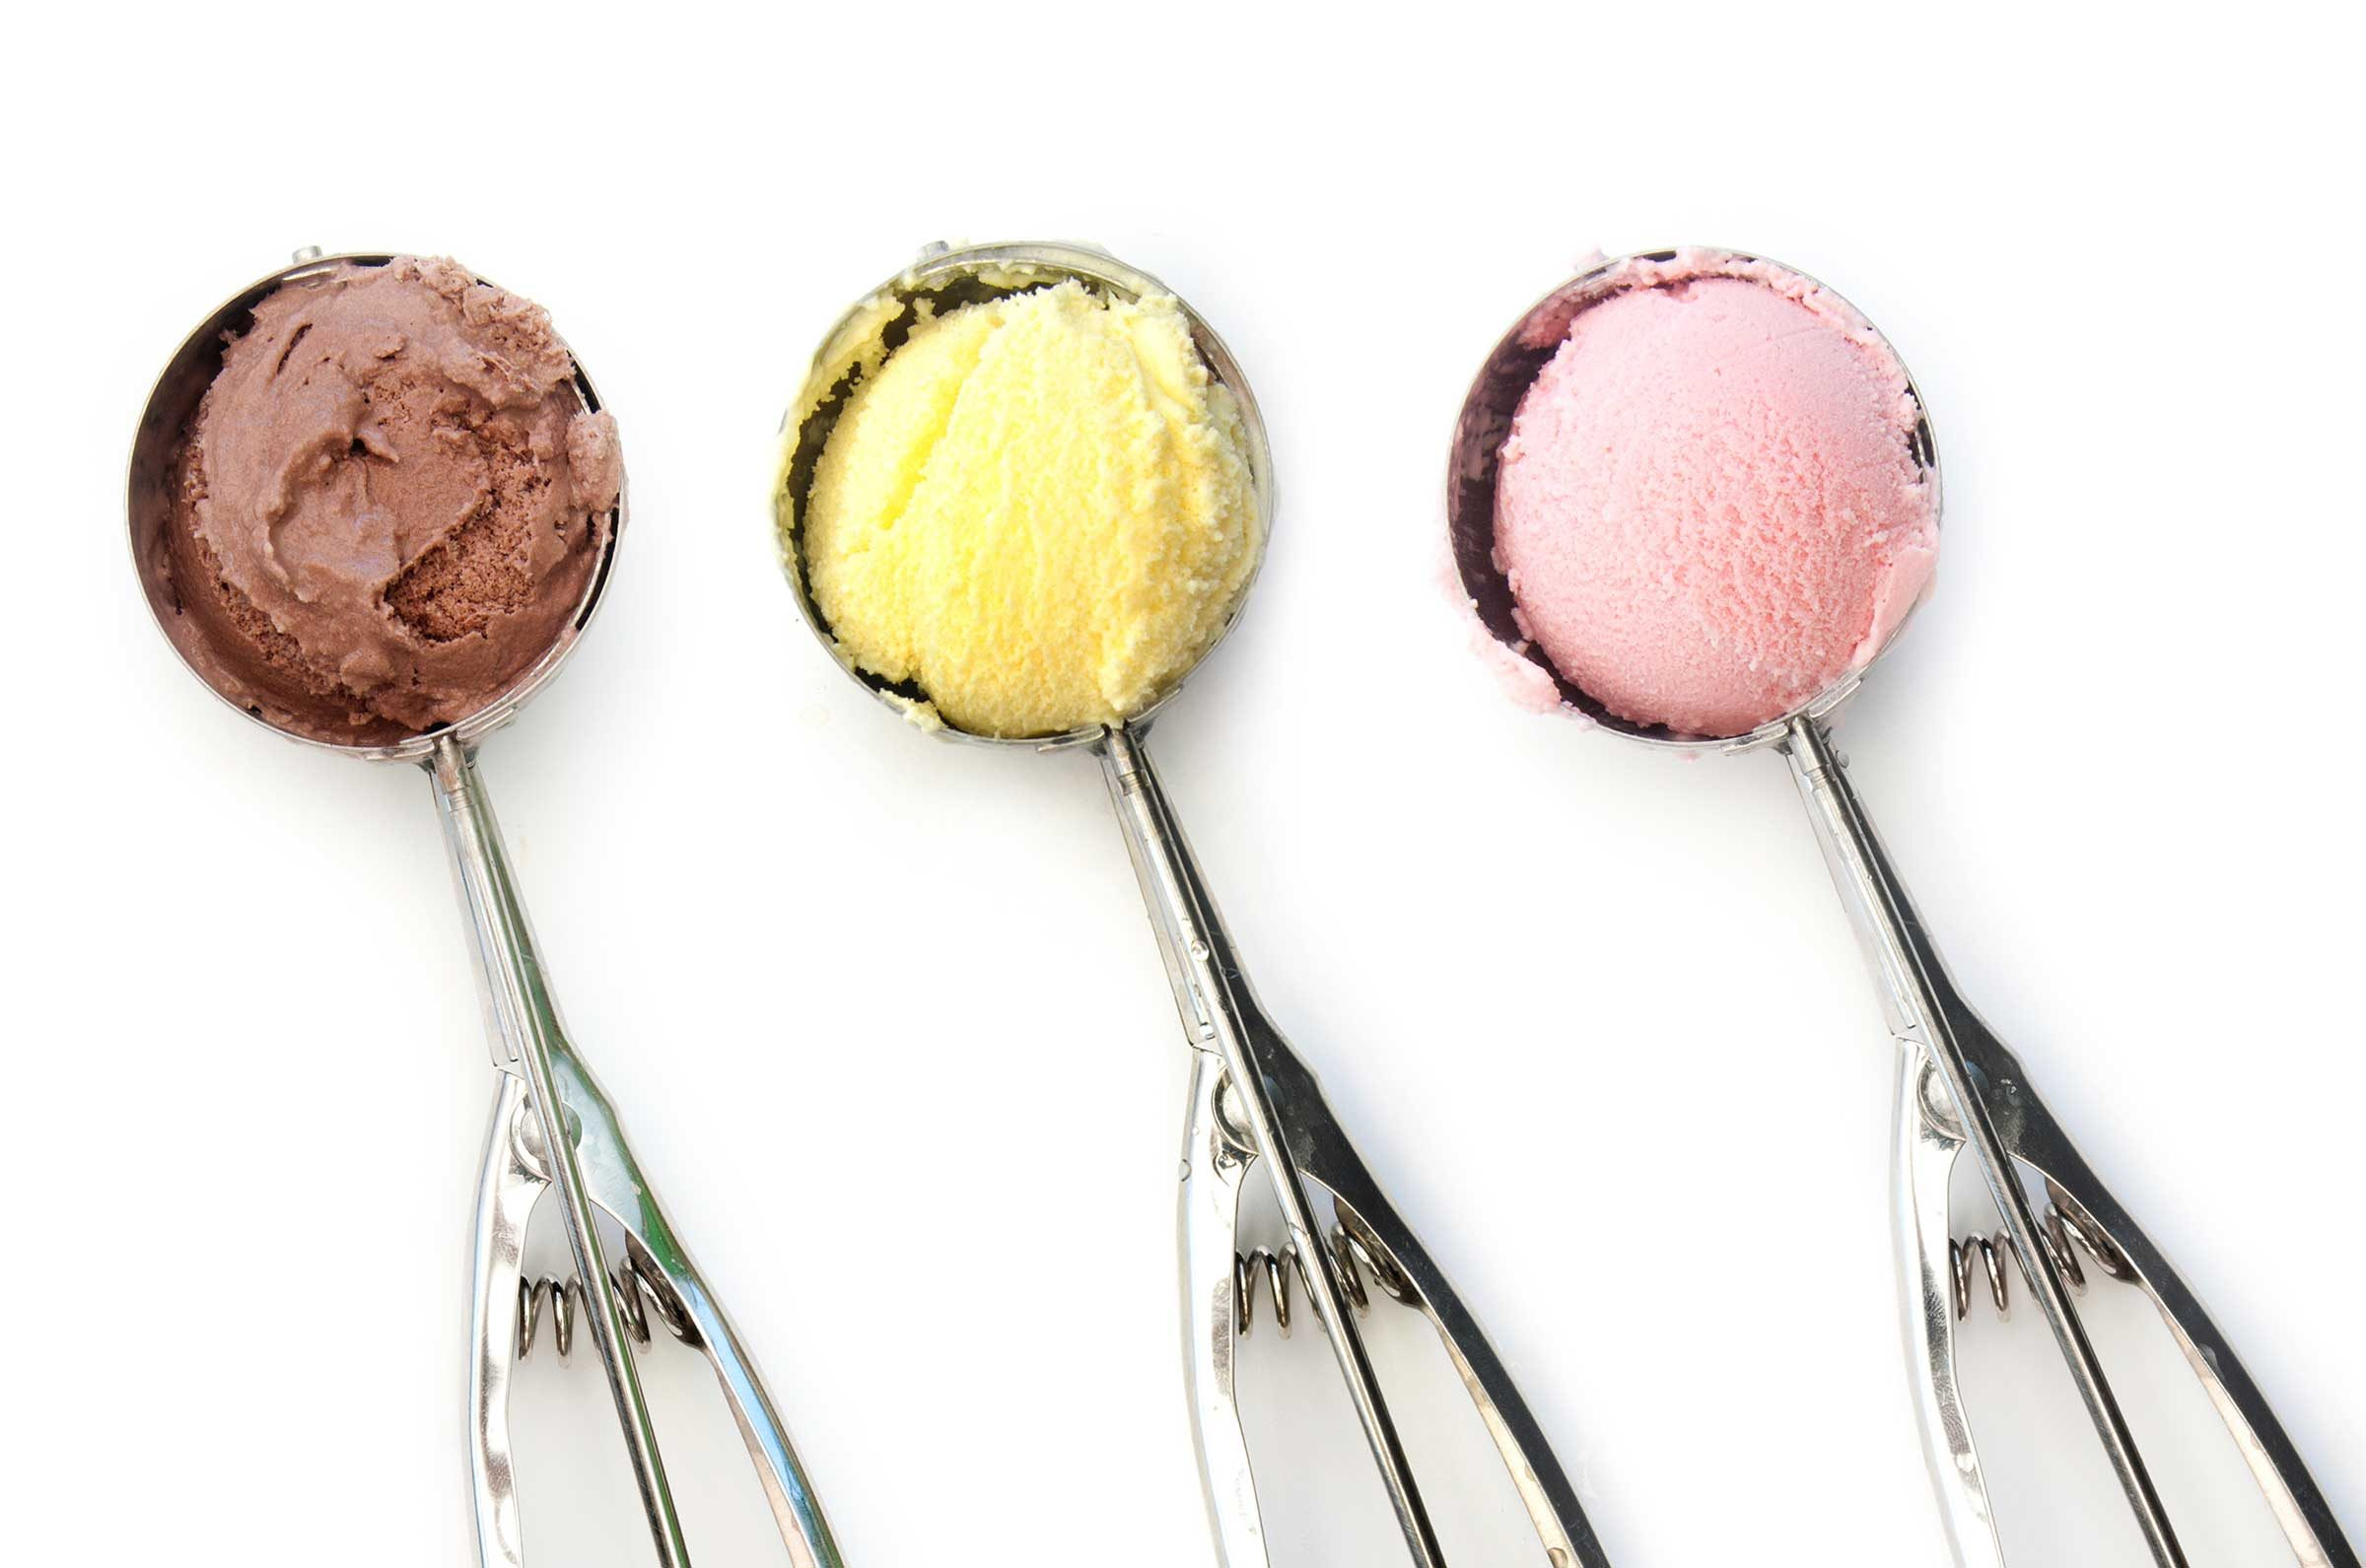 Kitchen equipment and their uses - Ice Cream Scoops Measure Cookie Dough